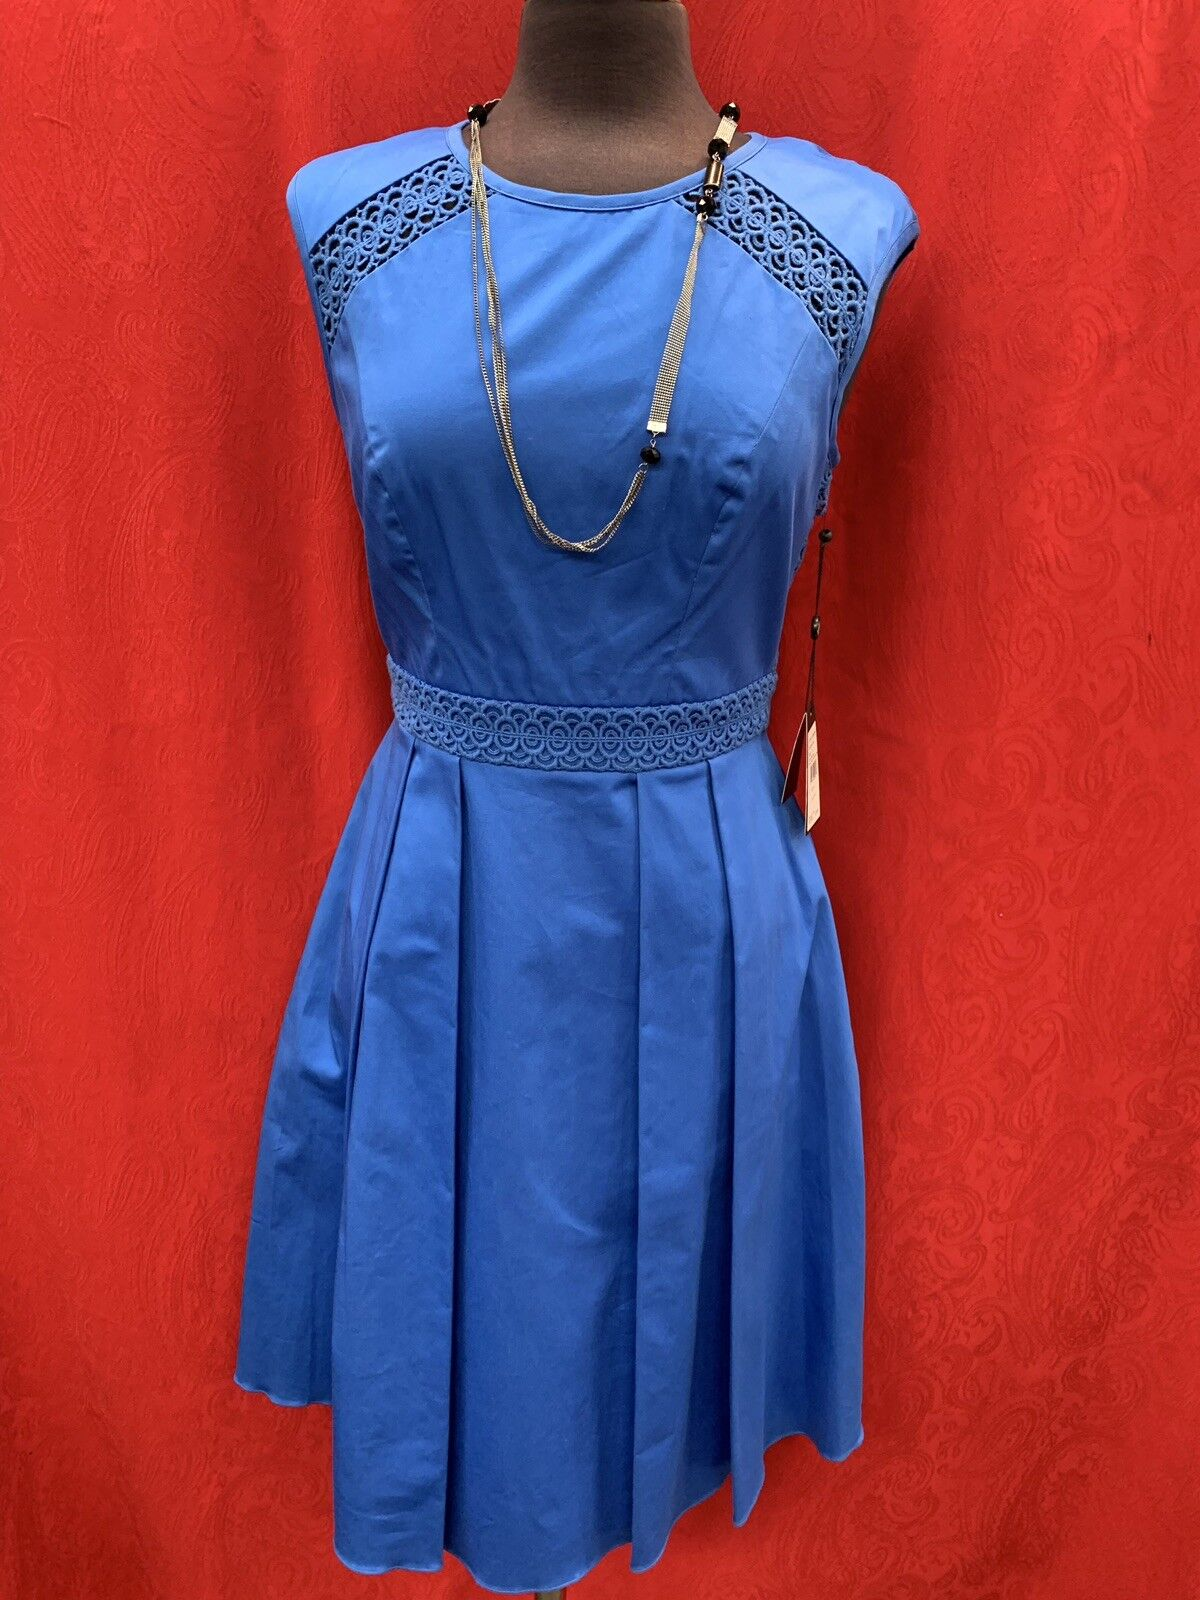 ADRIANNA PAPELL DRESS COTTON NEW WITH TAG RETAIL SIZE 10 LENGTH 40